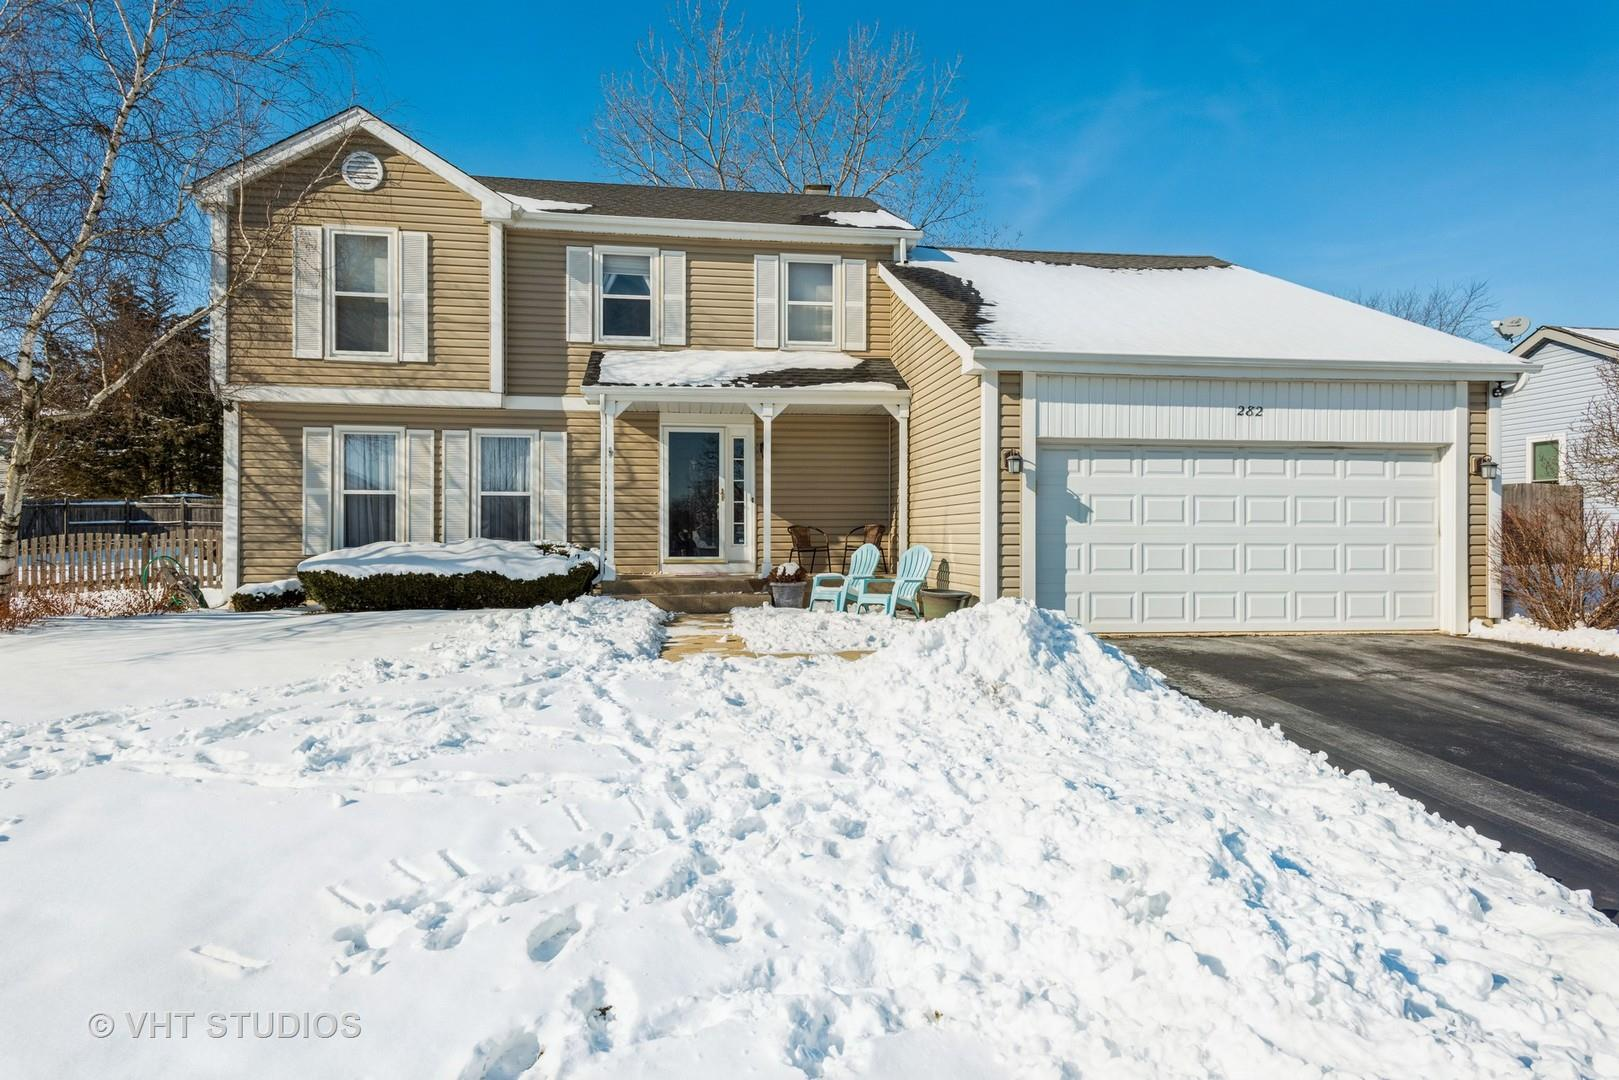 282 Abbeywood Lane, North Aurora, IL 60542 - #: 11009360